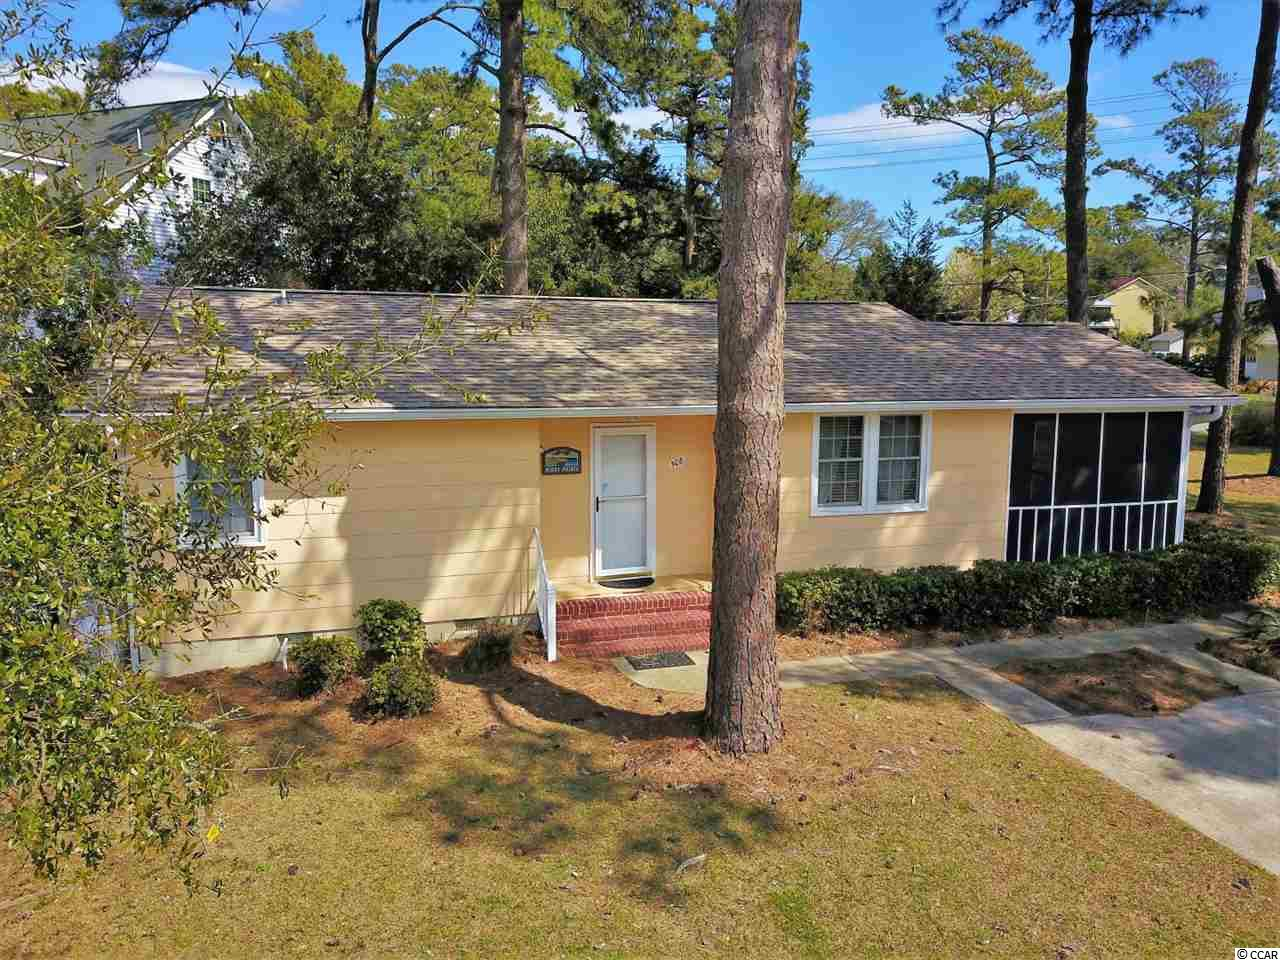 Absolutely adorable beach cottage on an oversized lot just a short 4 block walk to the beach! This 3 bed, 2 bath home has newer roof, HVAC, electrical fuse box, and water heater. The seller has done a lot to get this home updated and ready for a new owner. New countertops in kitchen, the exterior has been recently painted, and new carpet and padding throughout. Enjoy your large screened in porch while overlooking the serene yard- or take a stroll and put your chair in the sand at Windy Hill beach in North Myrtle. There is a deck off the back and a separate storage building. All information is deemed reliable but not guaranteed. Buyer is responsible for verification.